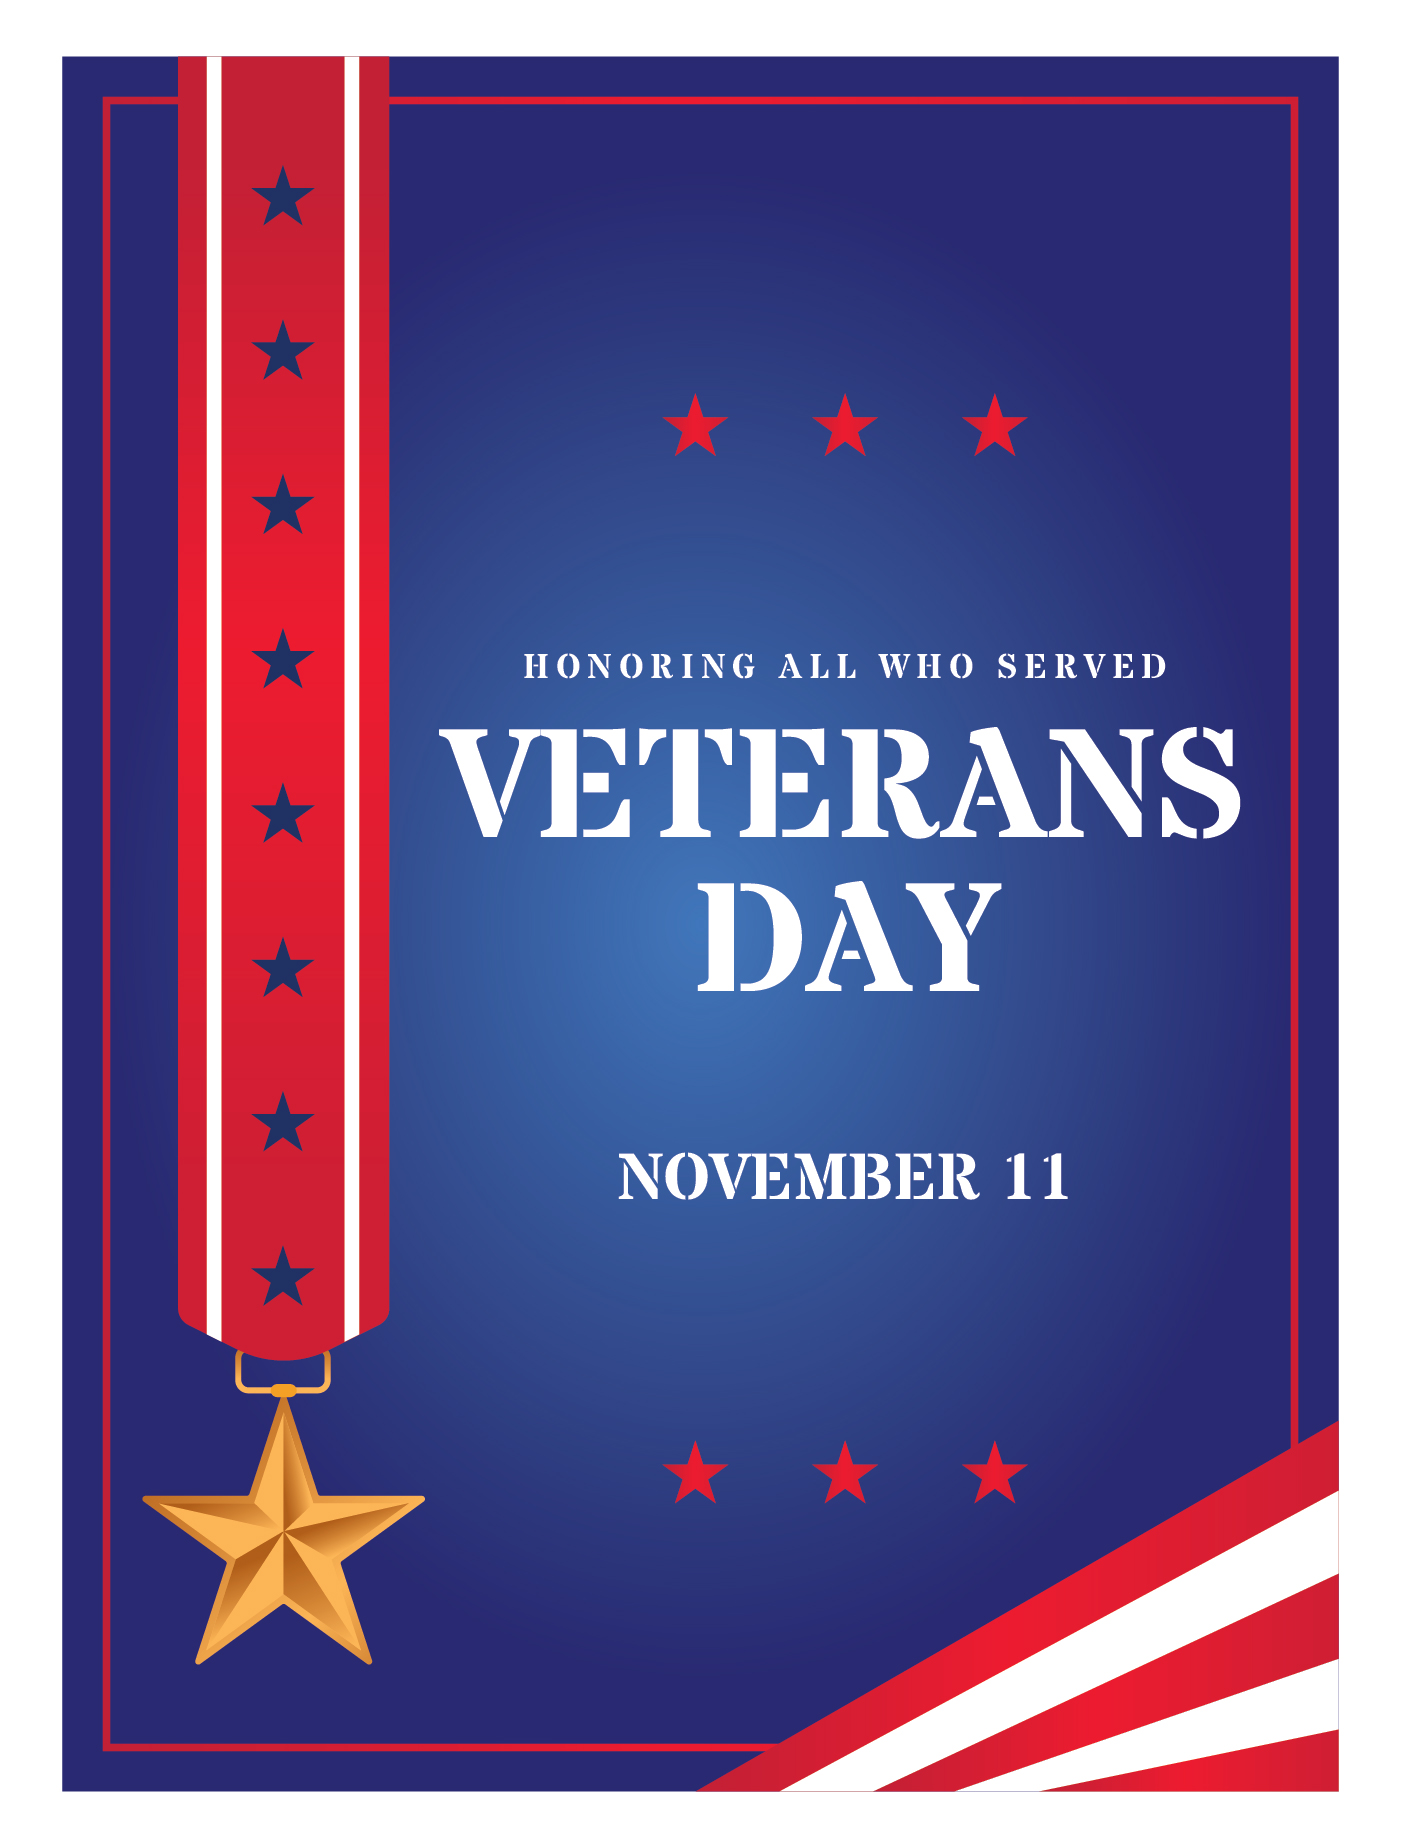 Veterans Day Poster - Download Free Vector Art, Stock ...